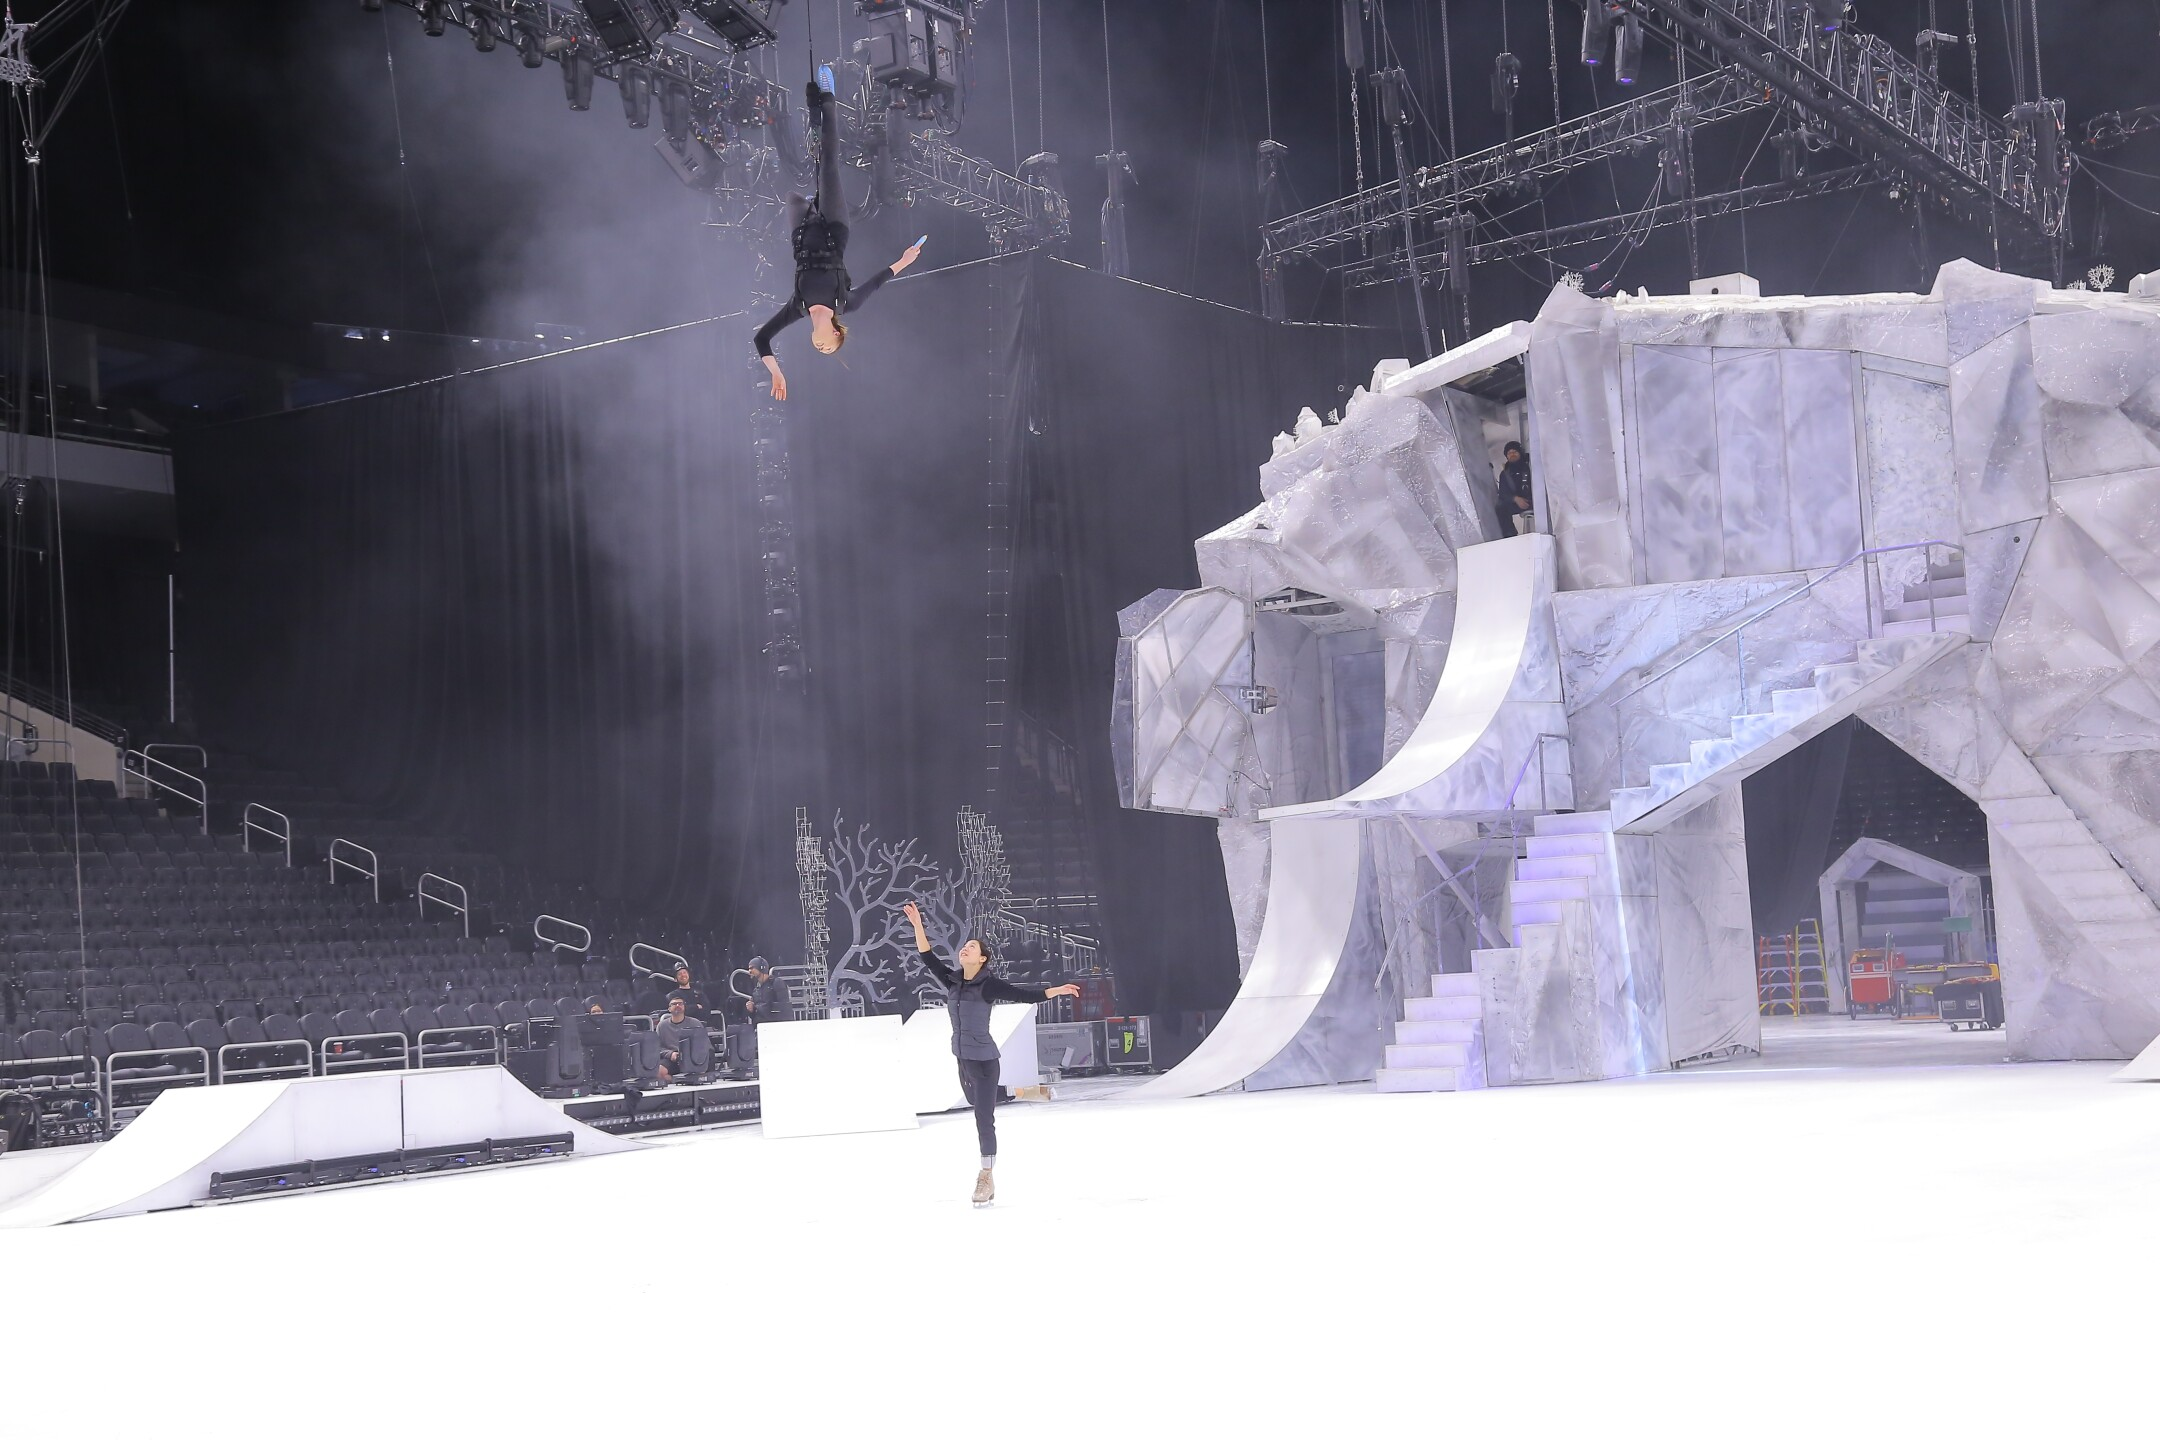 Acrobats and skaters are hitting the ice for the first time ever in Cirque du Soleil Crystal. See the show at Fiserv Forum through Sunday.